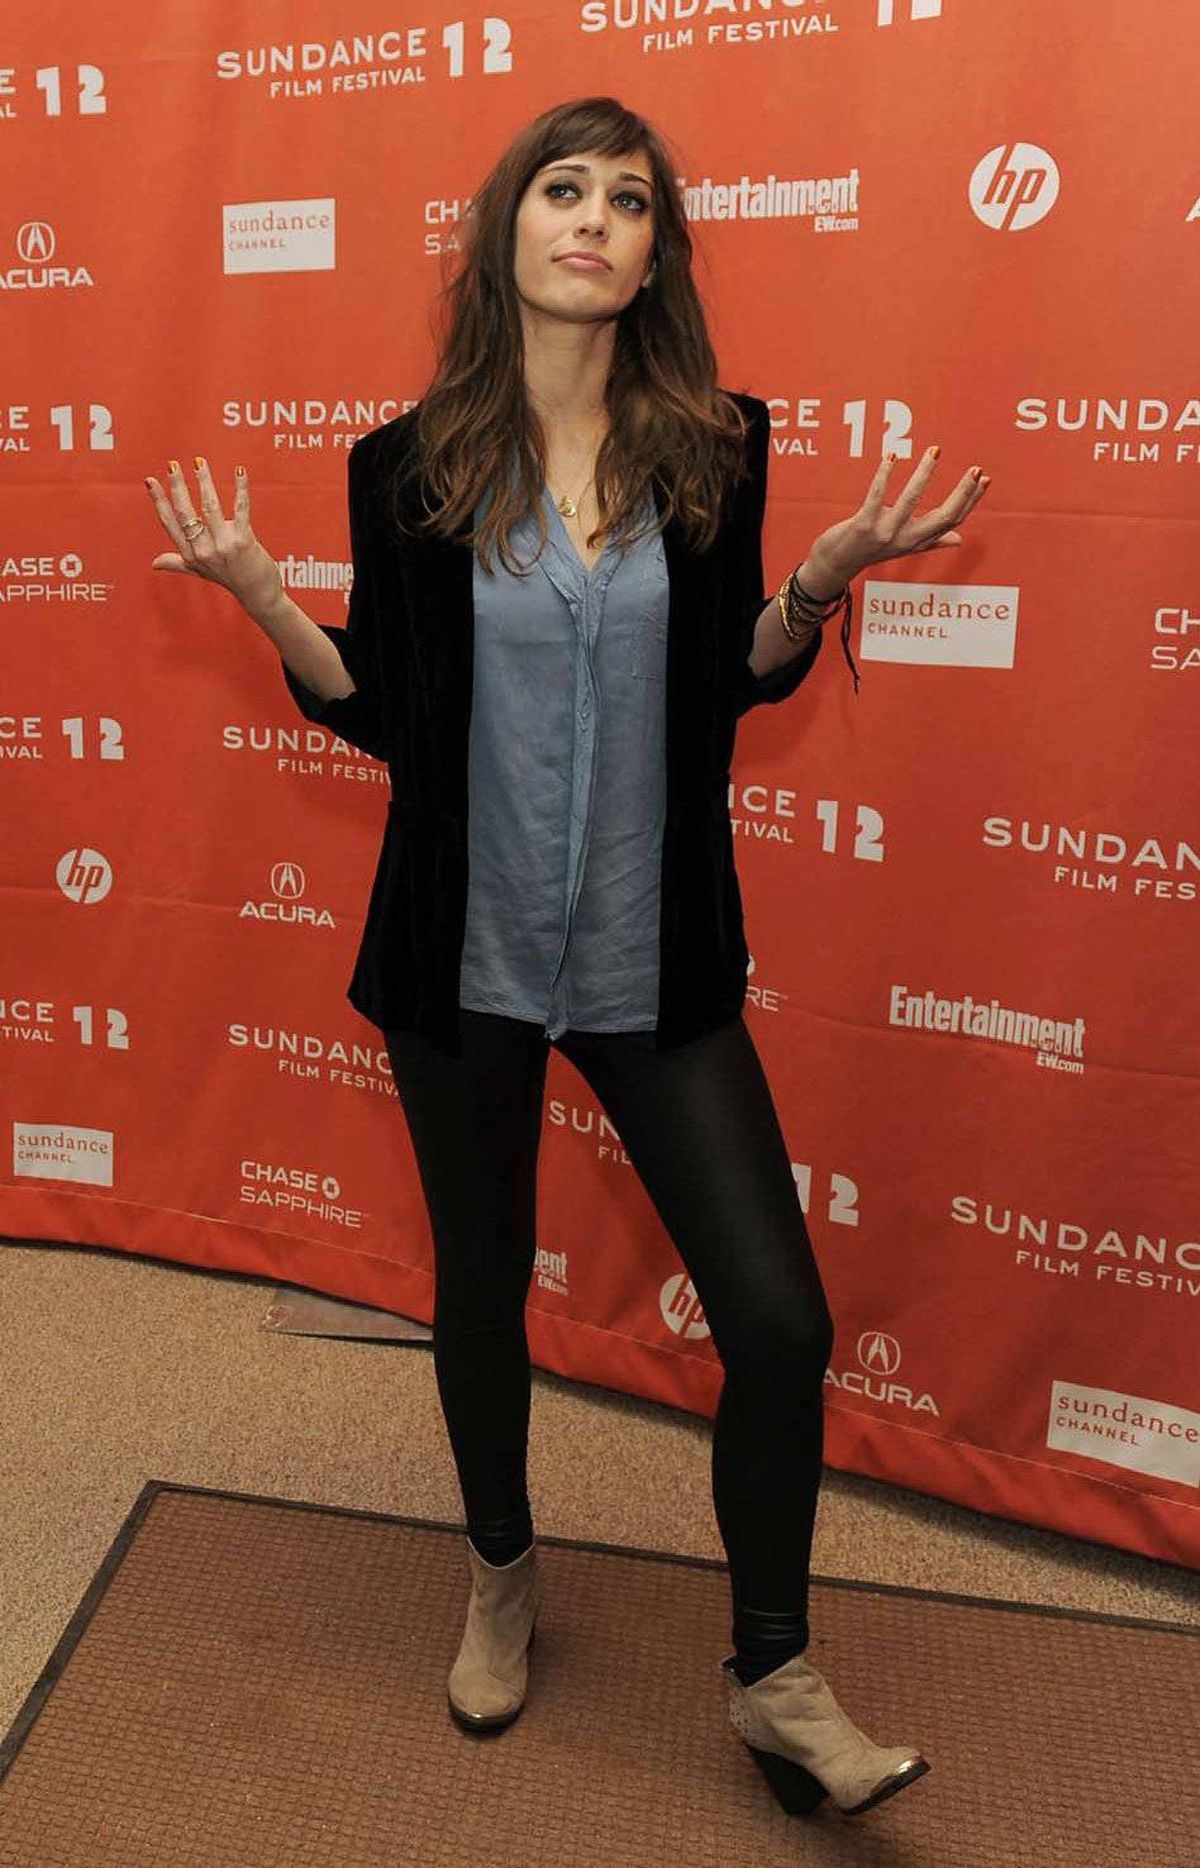 """""""Let's see: I put on a shirt, a jacket, some shoes and my pantyhose. Nope, I'm not forgetting anything,"""" says Lizzy Caplan at the Sundance Film Festival on Monday."""